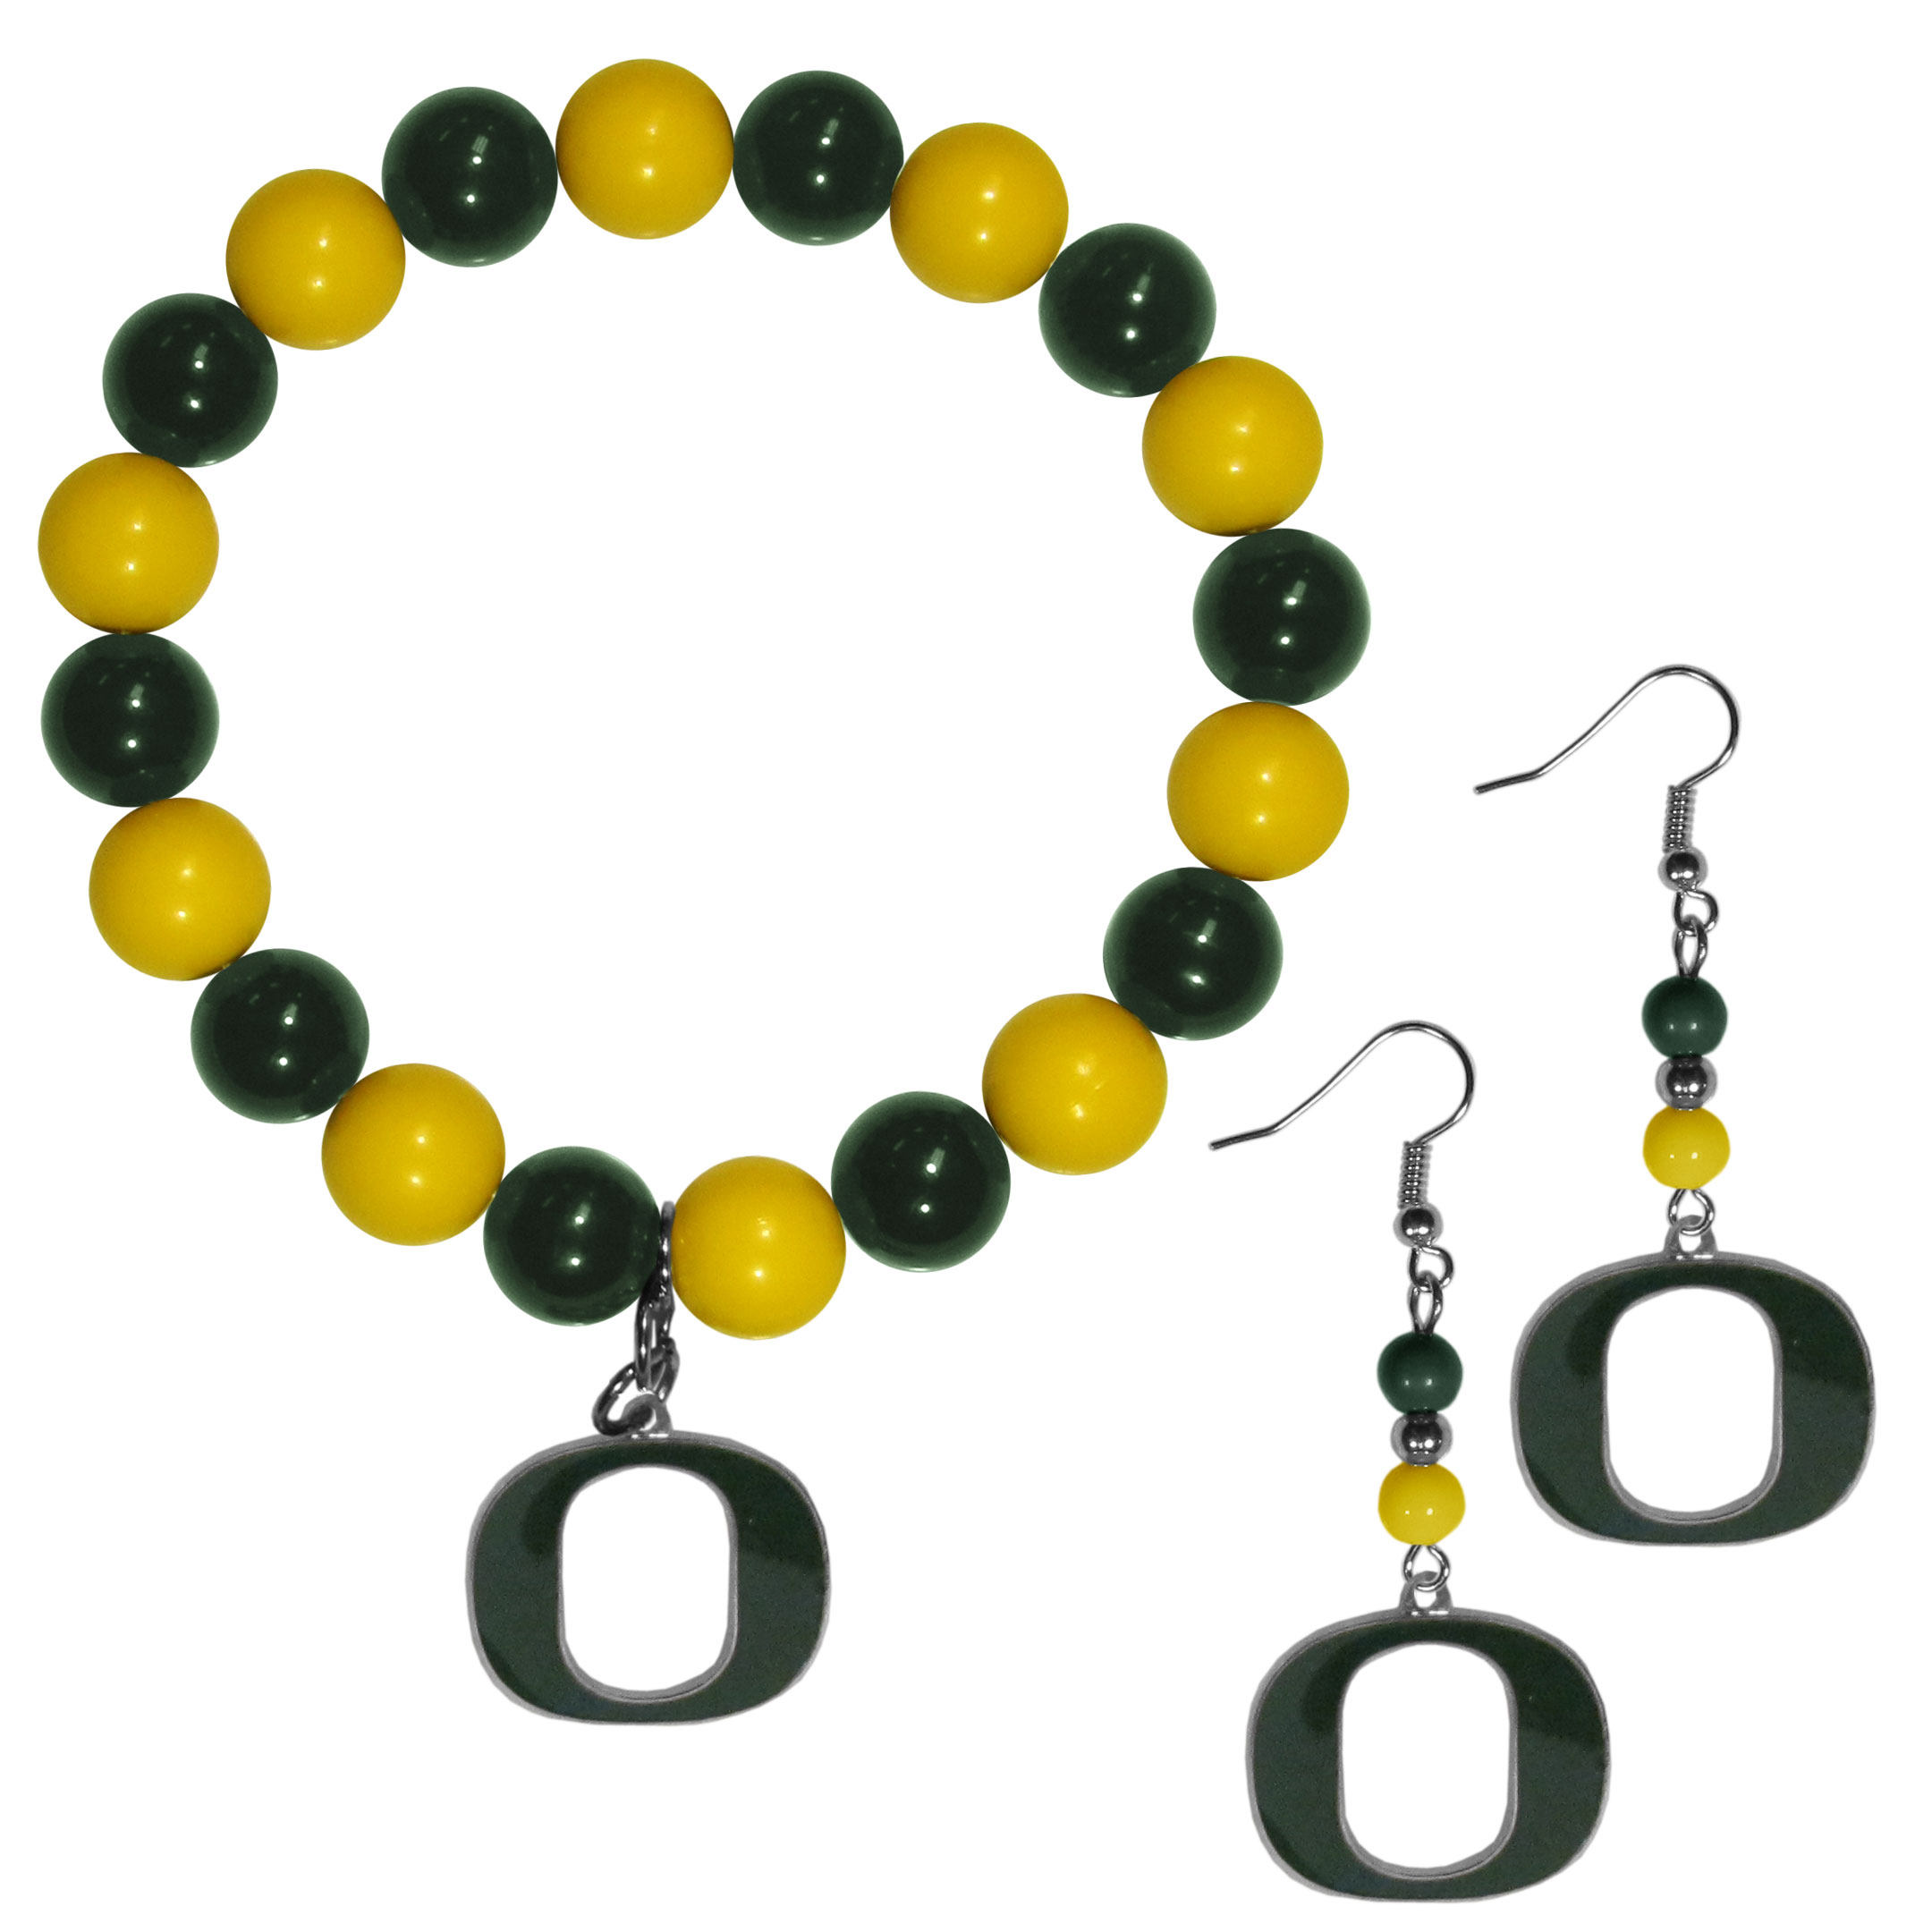 Oregon Ducks Fan Bead Earrings and Bracelet Set - This fun and colorful Oregon Ducks fan bead jewelry set is fun and casual with eye-catching beads in bright team colors. The fashionable dangle earrings feature a team colored beads that drop down to a carved and enameled charm. The stretch bracelet has larger matching beads that make a striking statement and have a matching team charm. These sassy yet sporty jewelry pieces make a perfect gift for any female fan. Spice up your game-day outfit with these fun colorful earrings and bracelet that are also cute enough for any day.